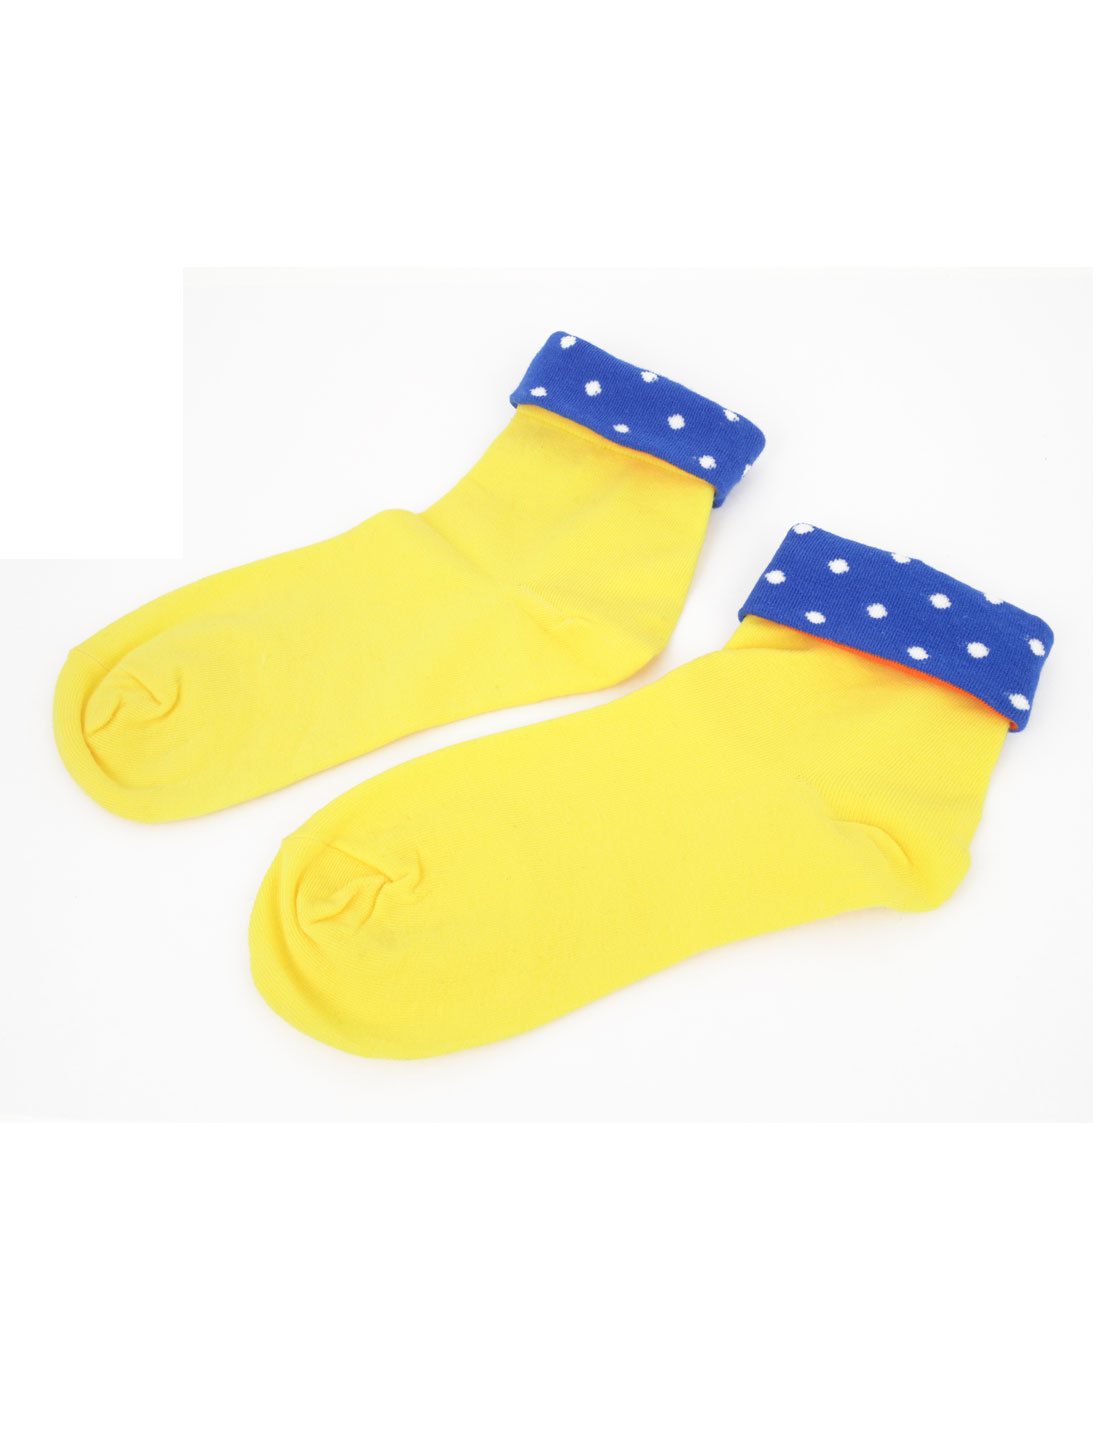 Women Warm Polka Dots Print Stretchy Cuff Ankle High Sockings Yellow Blue Pair